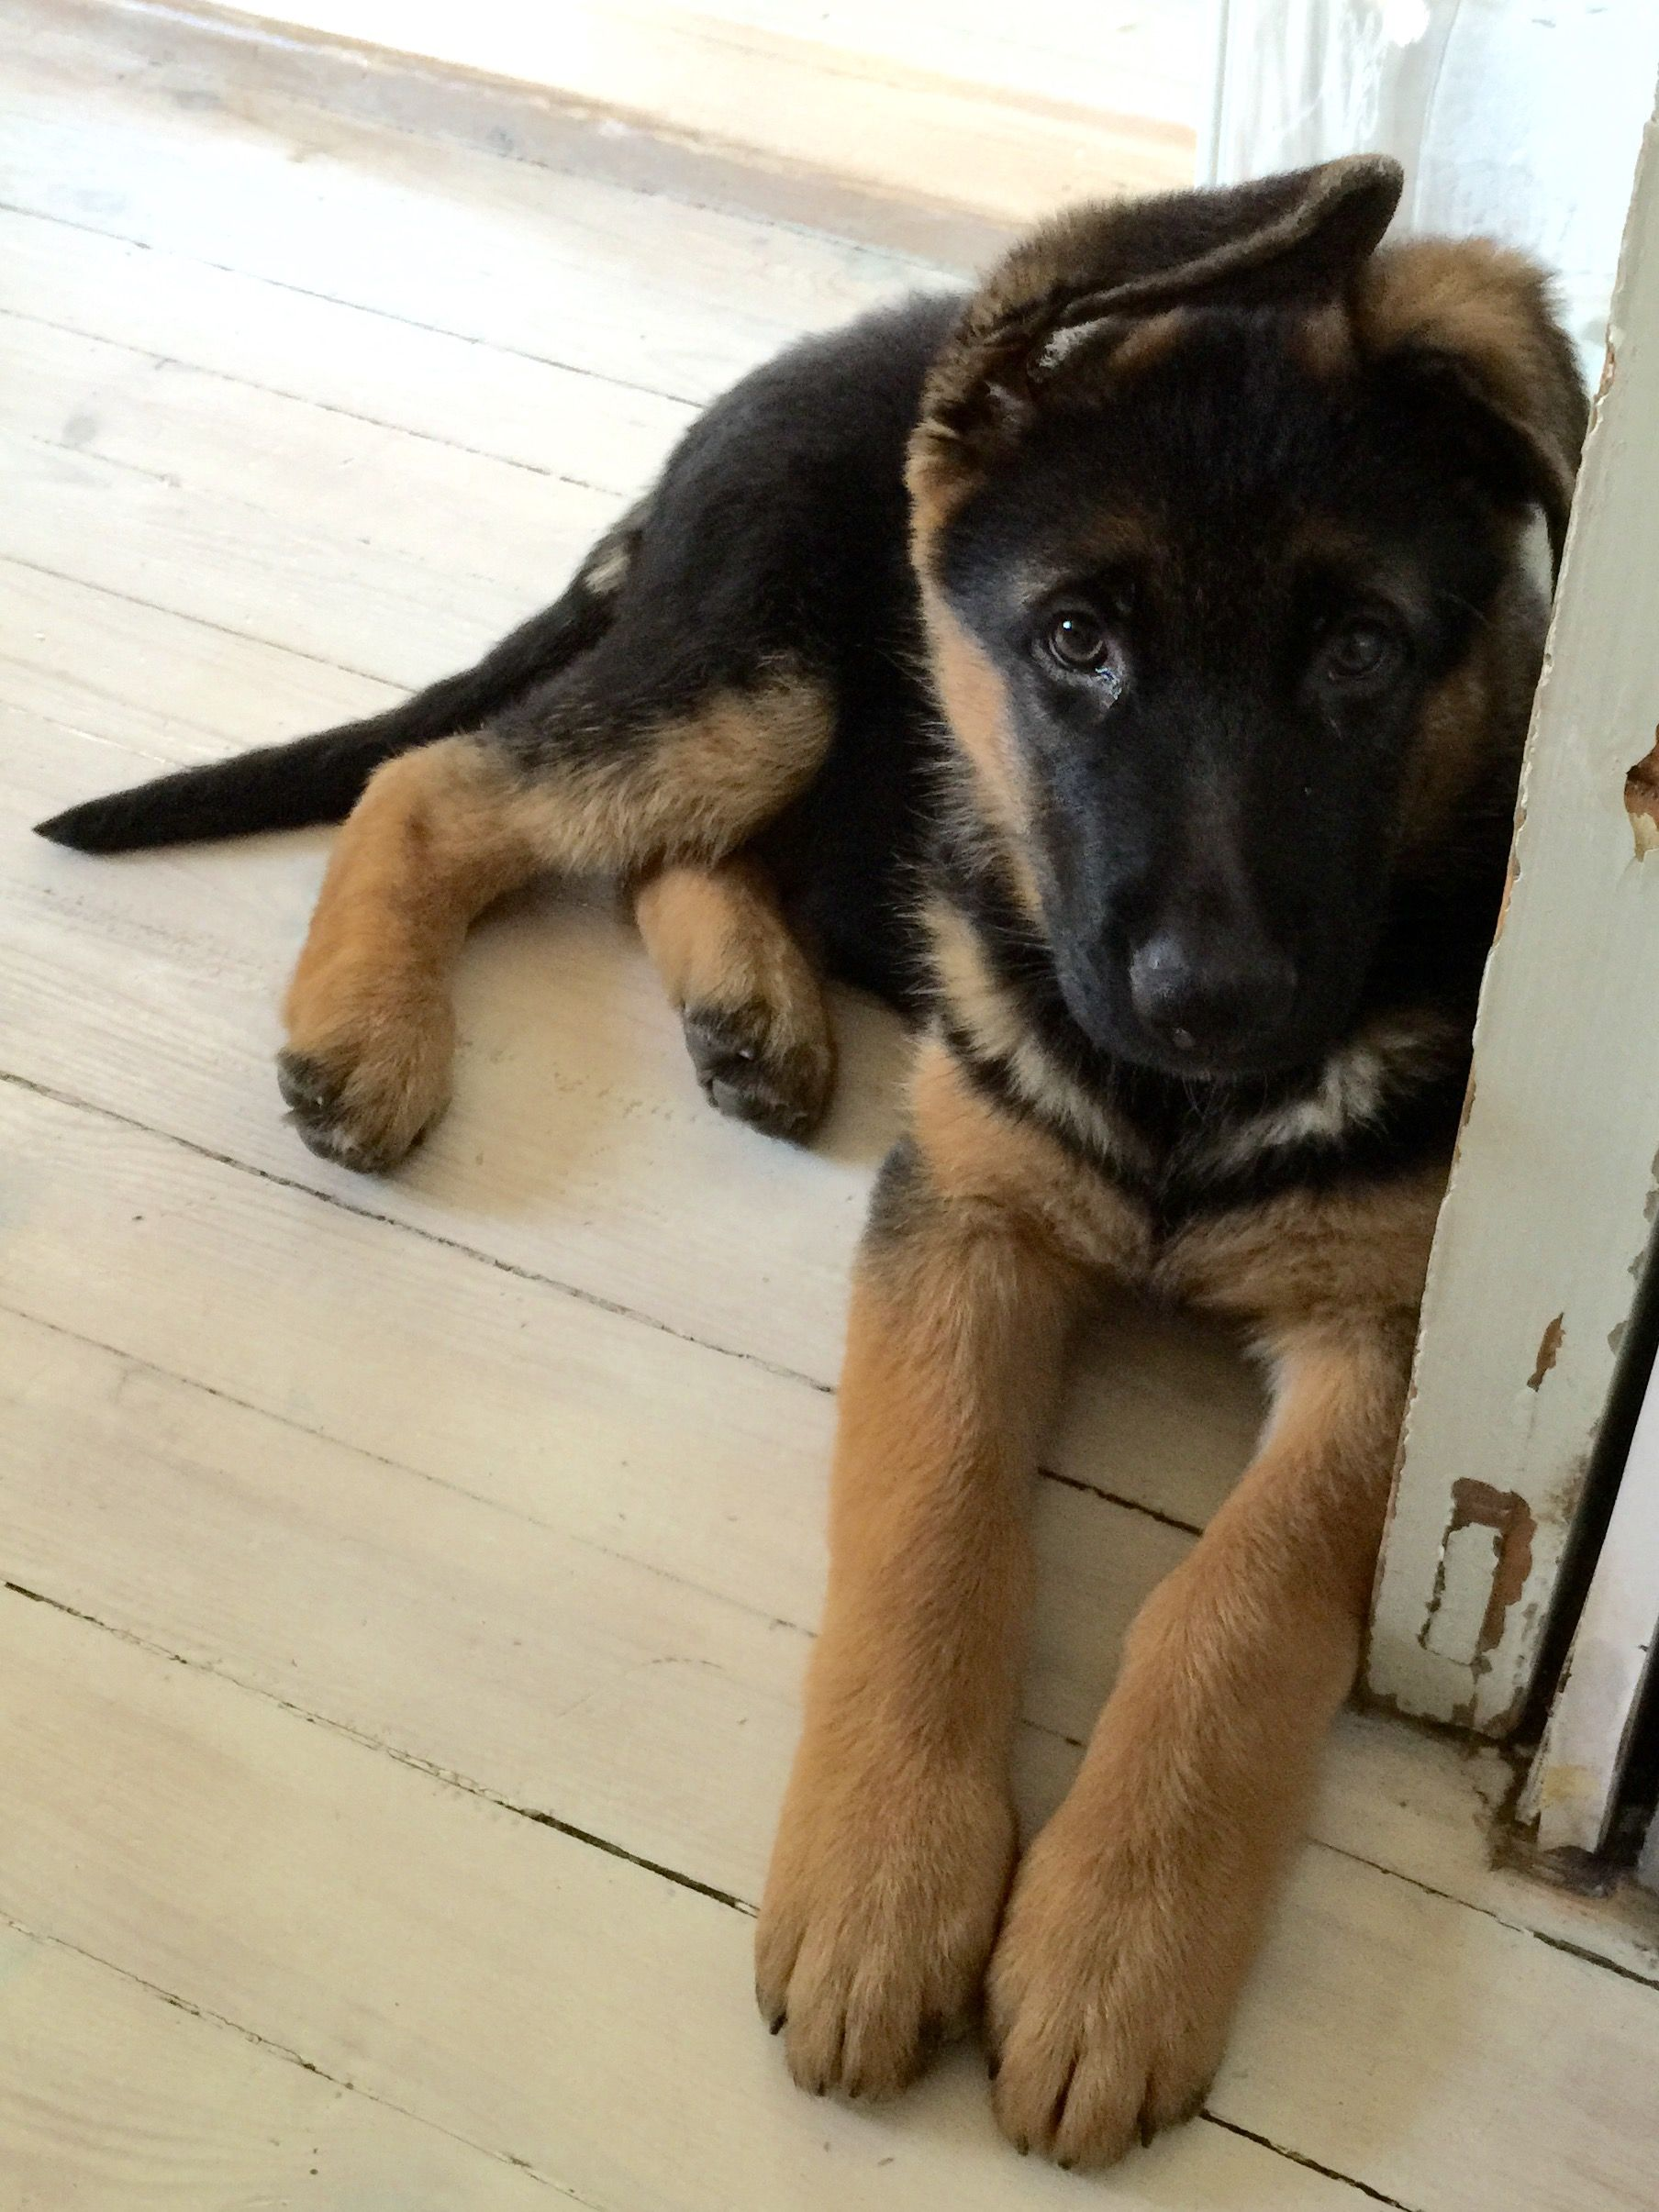 Gsd puppy baby german shepherds gsd puppies puppy time